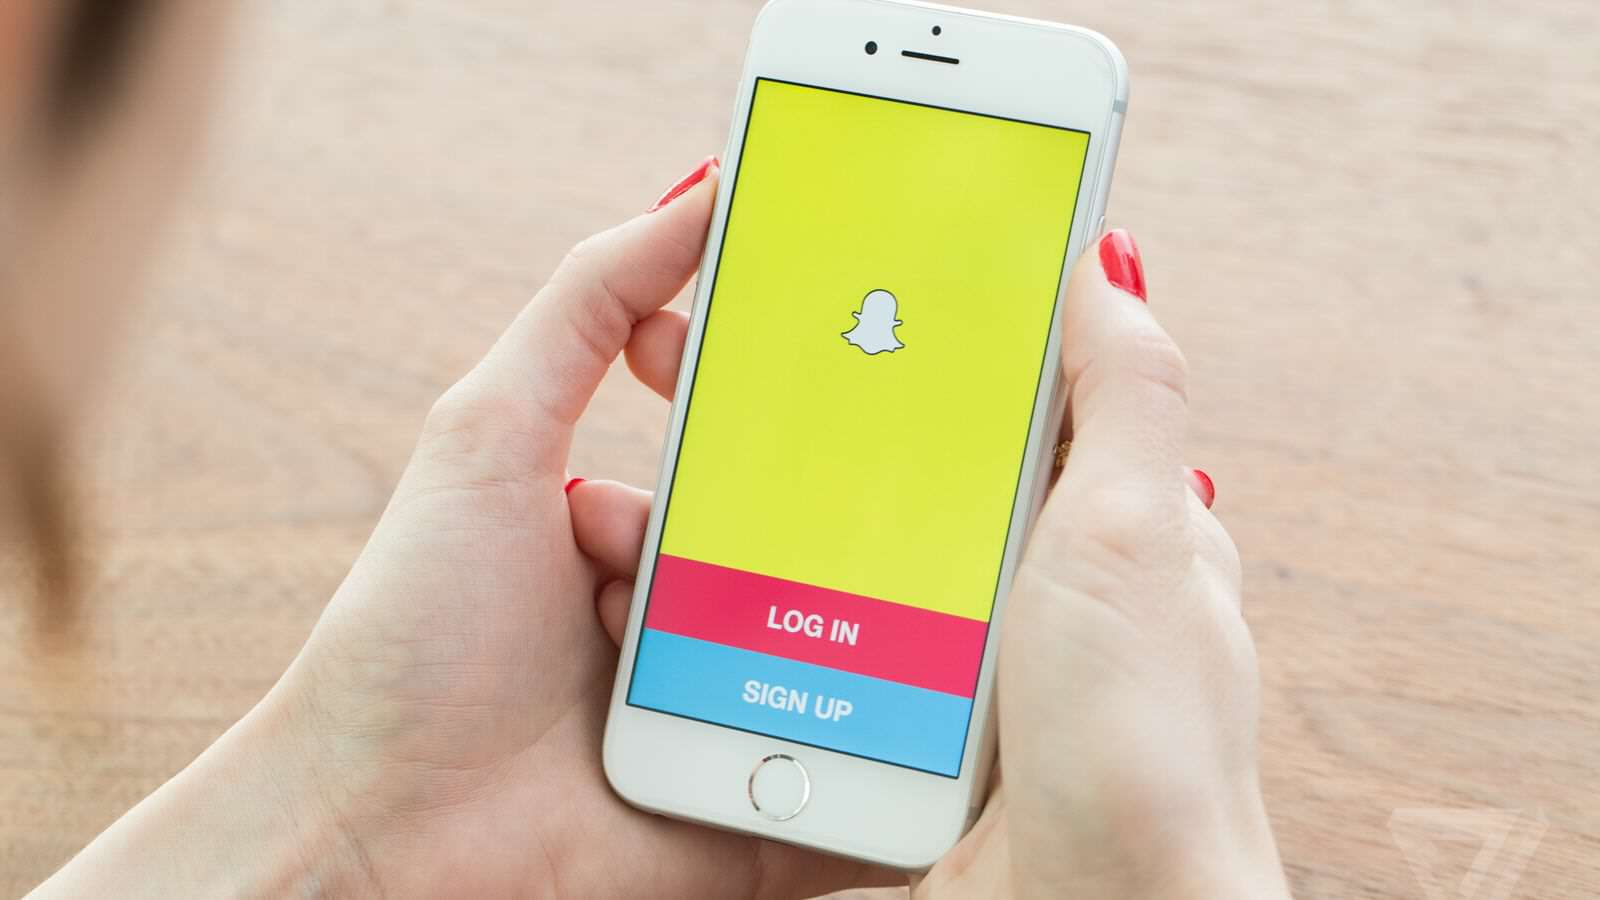 Snapchat Users Could Be Breaking The Law, Heres How snapchat wikim